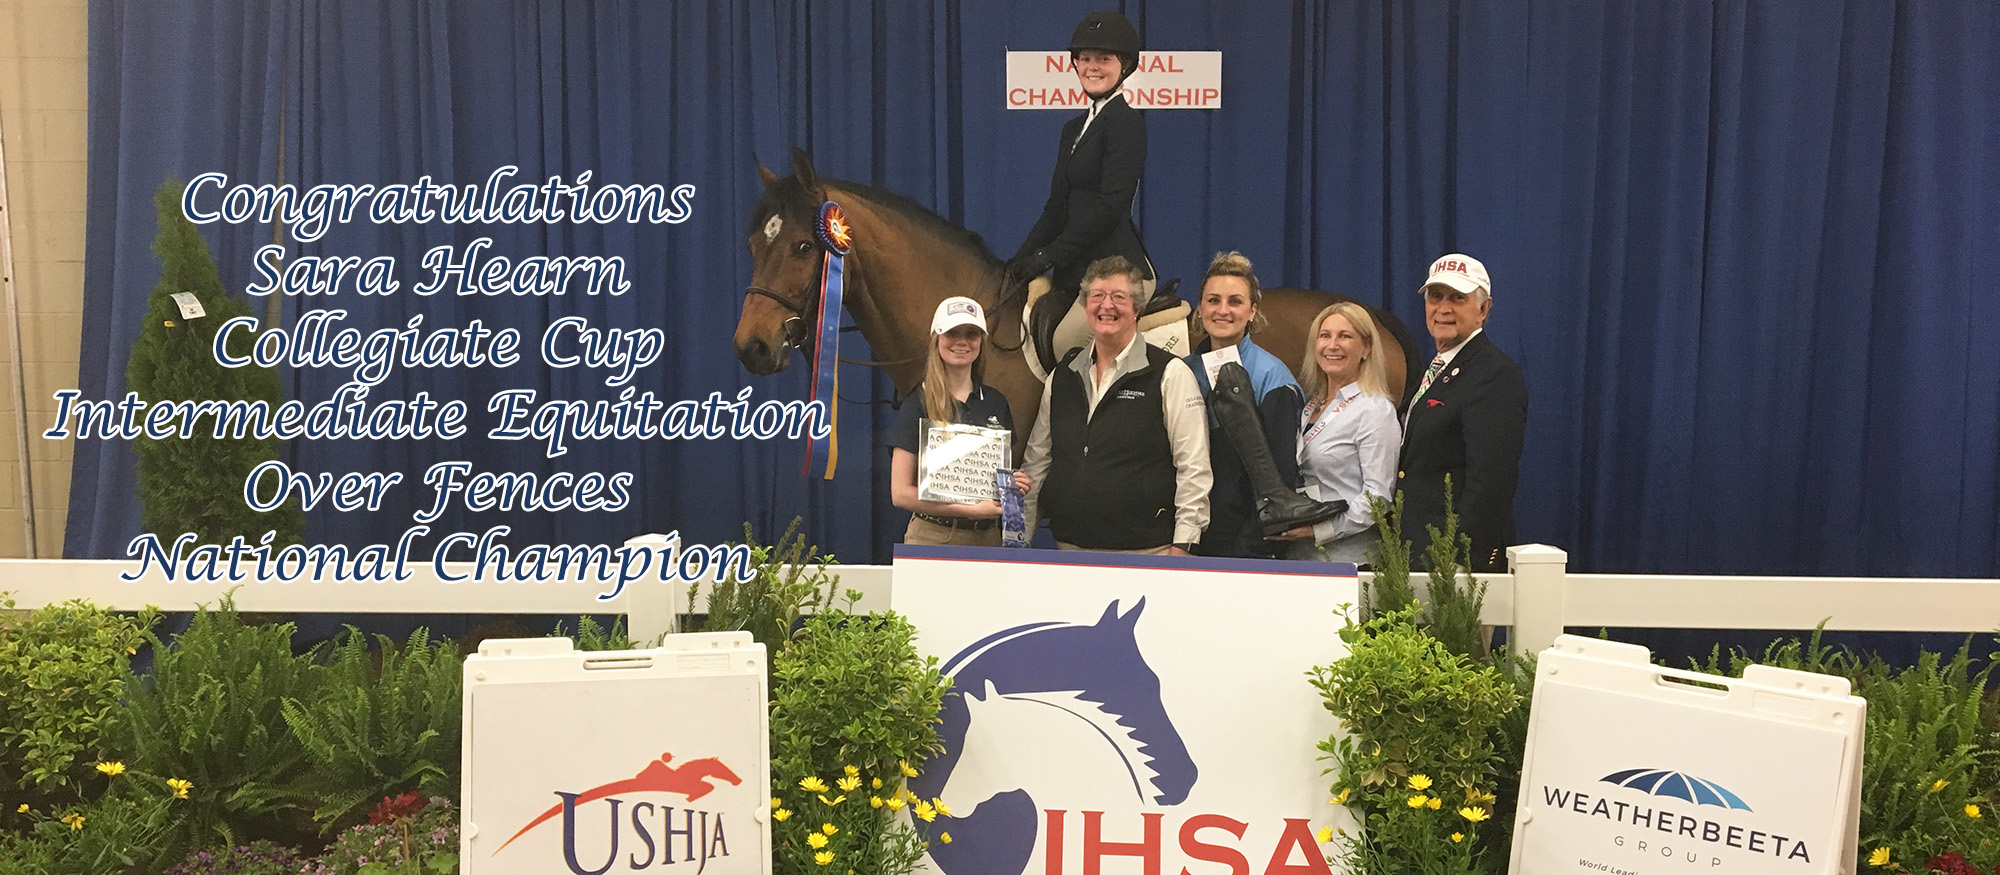 Photo showing Lyons first year rider Sara Hearn, who won the 2018 IHSA Collegiate Cup Intermediate Over Fences Equitation. She is pictured on the winning horse, along with head coach CJ Law, assistant coach Tara Matthews and IHSA Executive Director, Bob Cacchione.